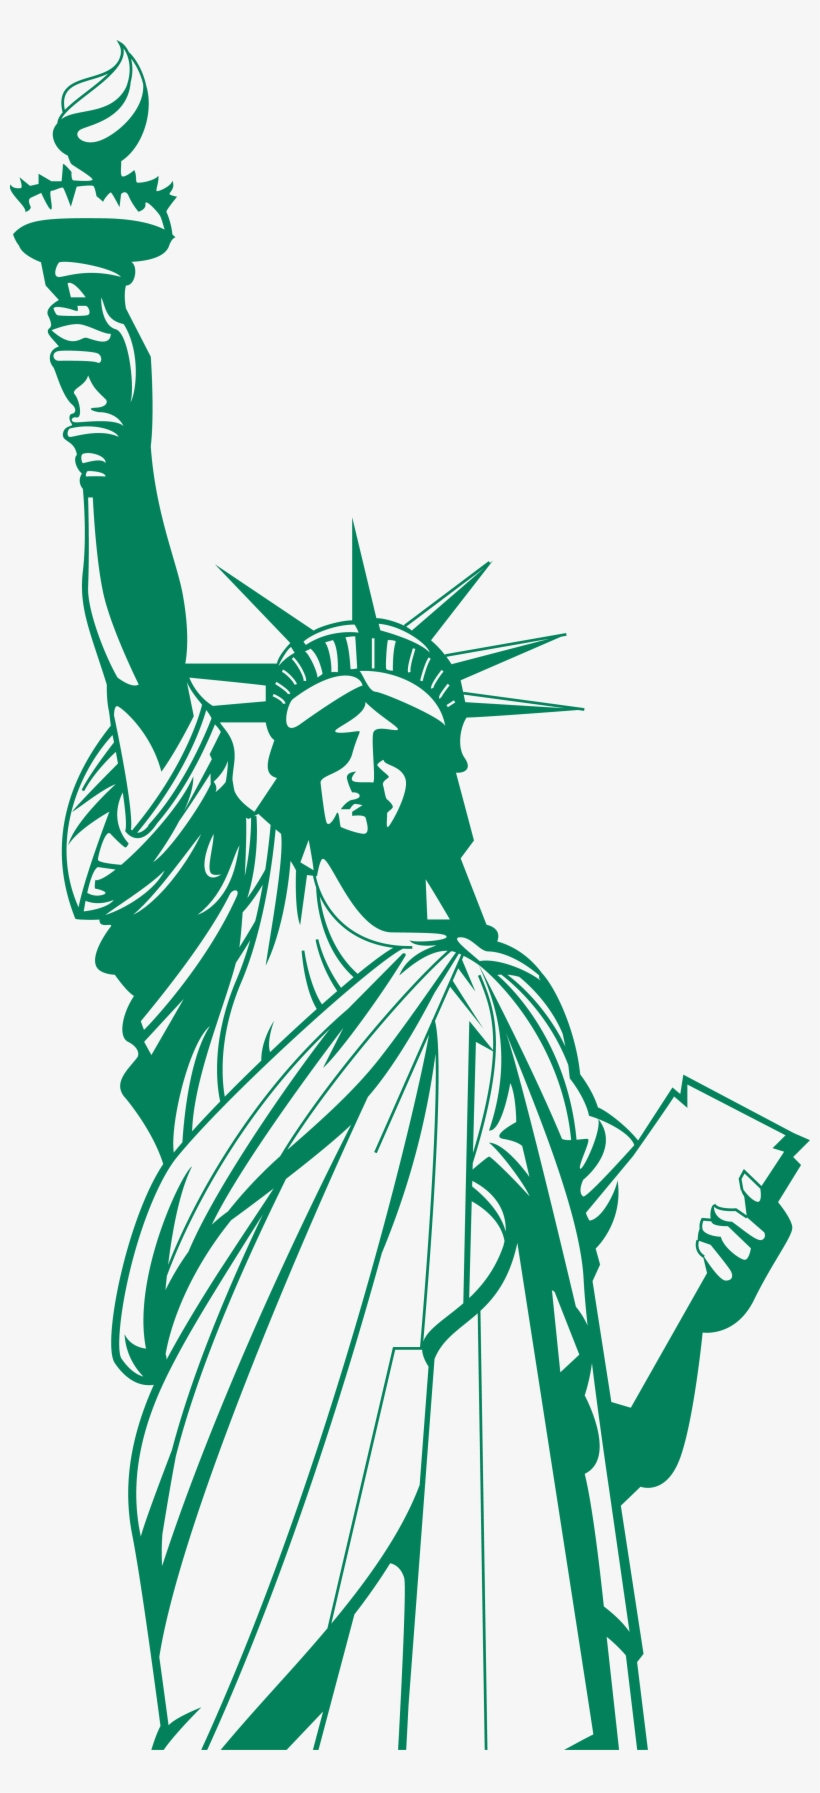 Statue Of Liberty Logo Png Graphic Black And White.